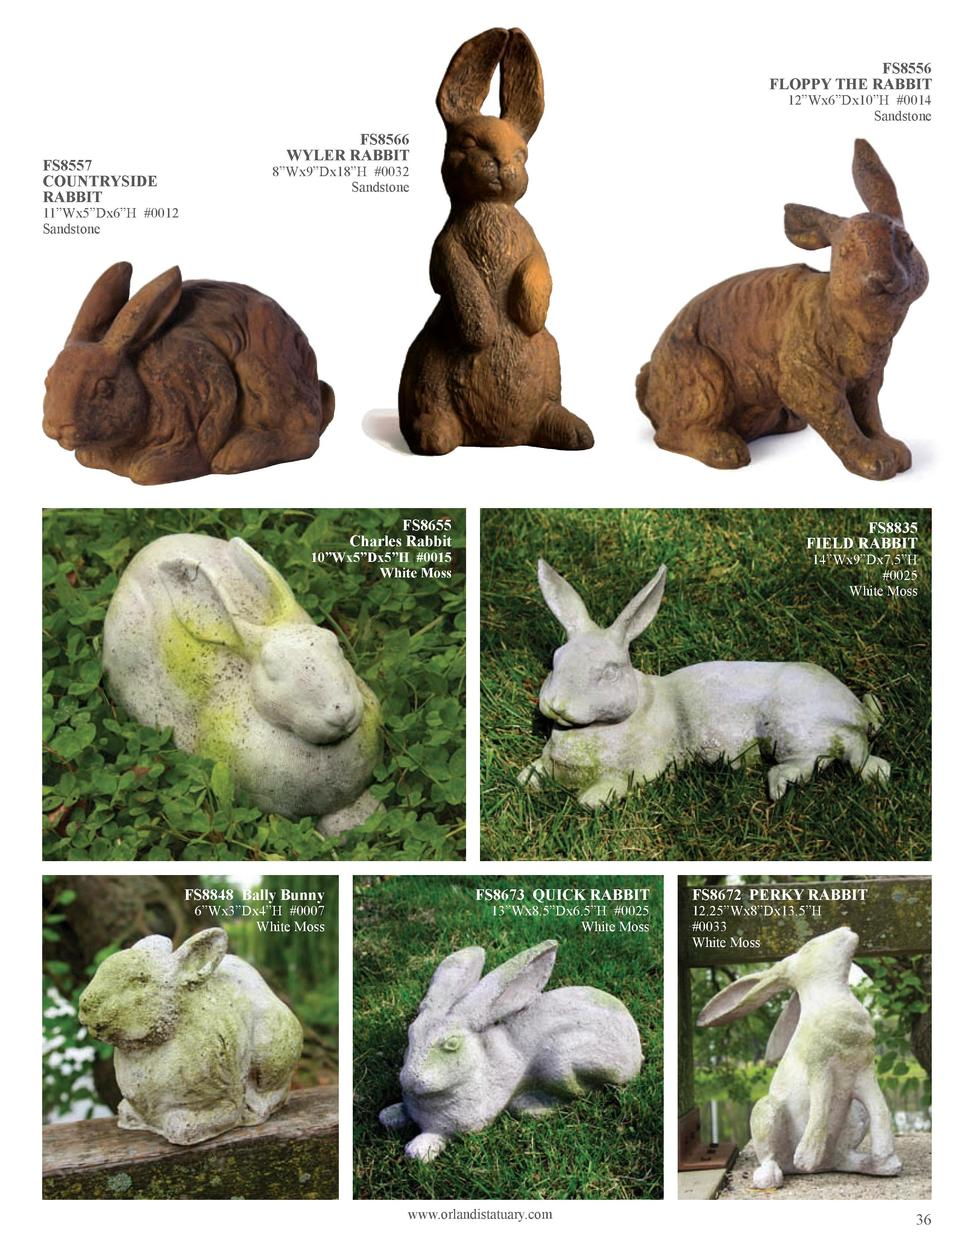 FS8556 FLOPPY THE RABBIT 12   Wx6   Dx10   H  0014 Sandstone  FS8557 COUNTRYSIDE RABBIT  FS8566 WYLER RABBIT  8   Wx9   Dx...